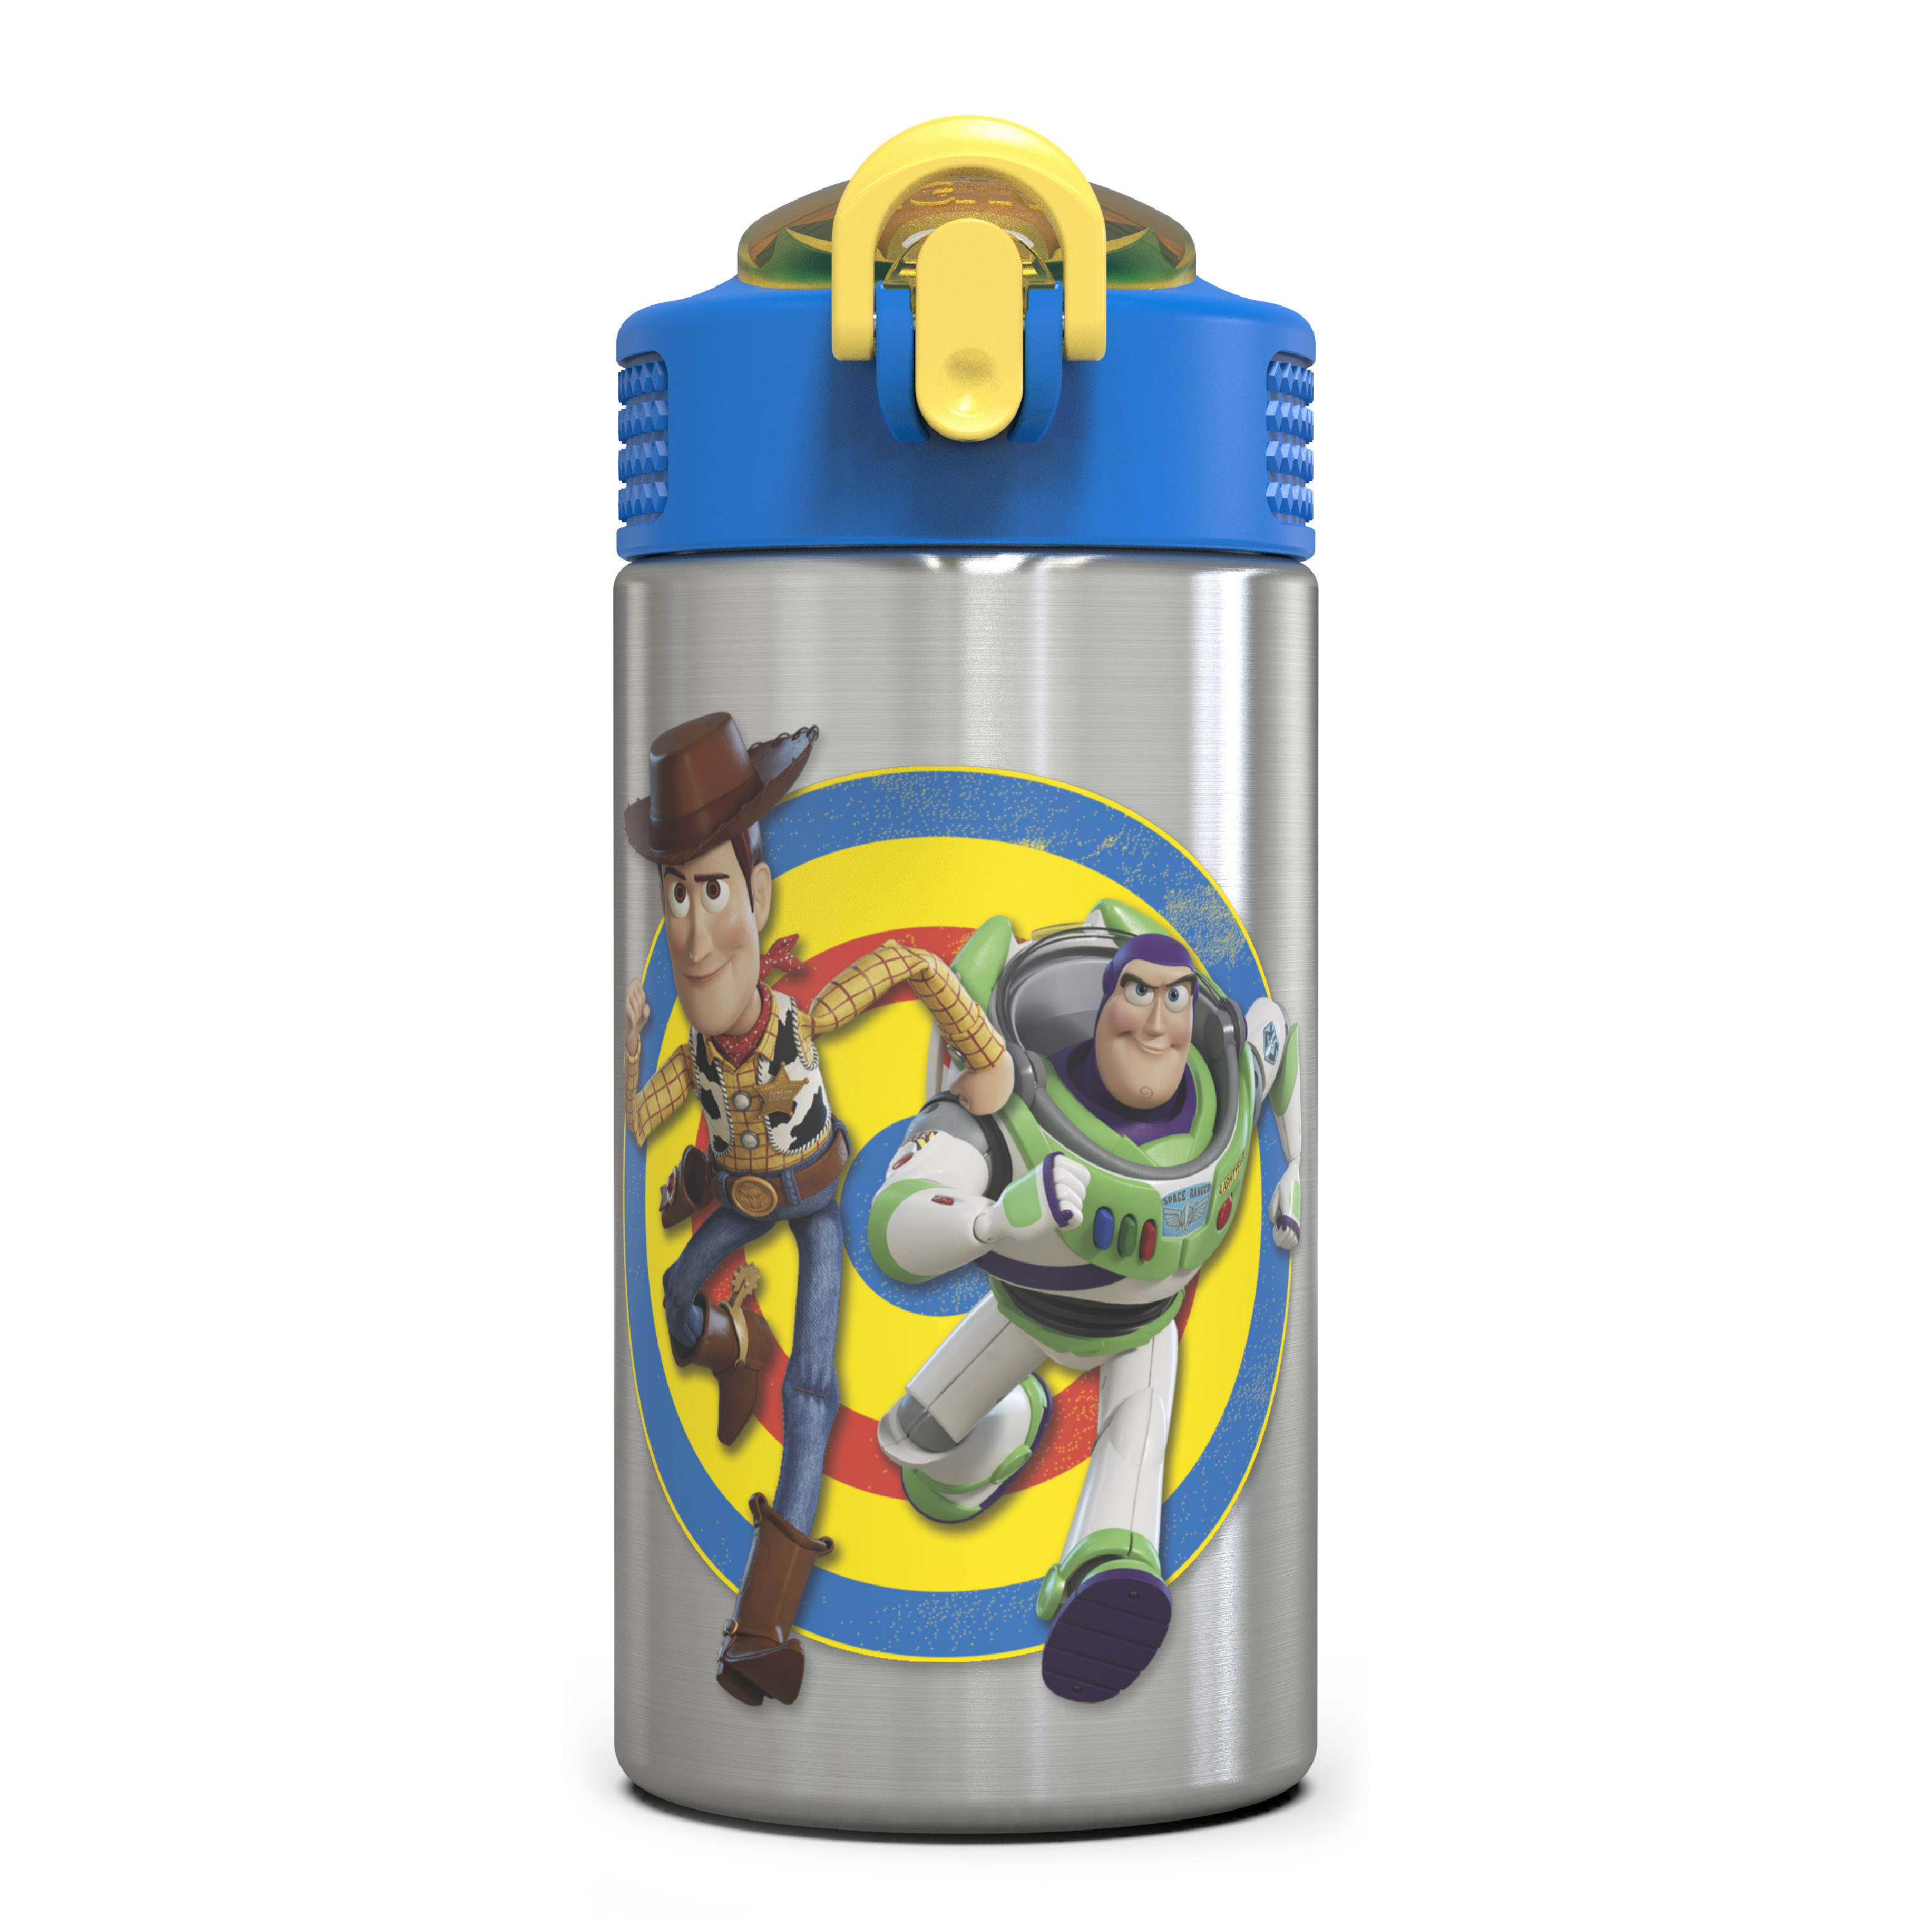 Toy Story 4 15.5 ounce Water Bottle, Buzz & Woody slideshow image 2